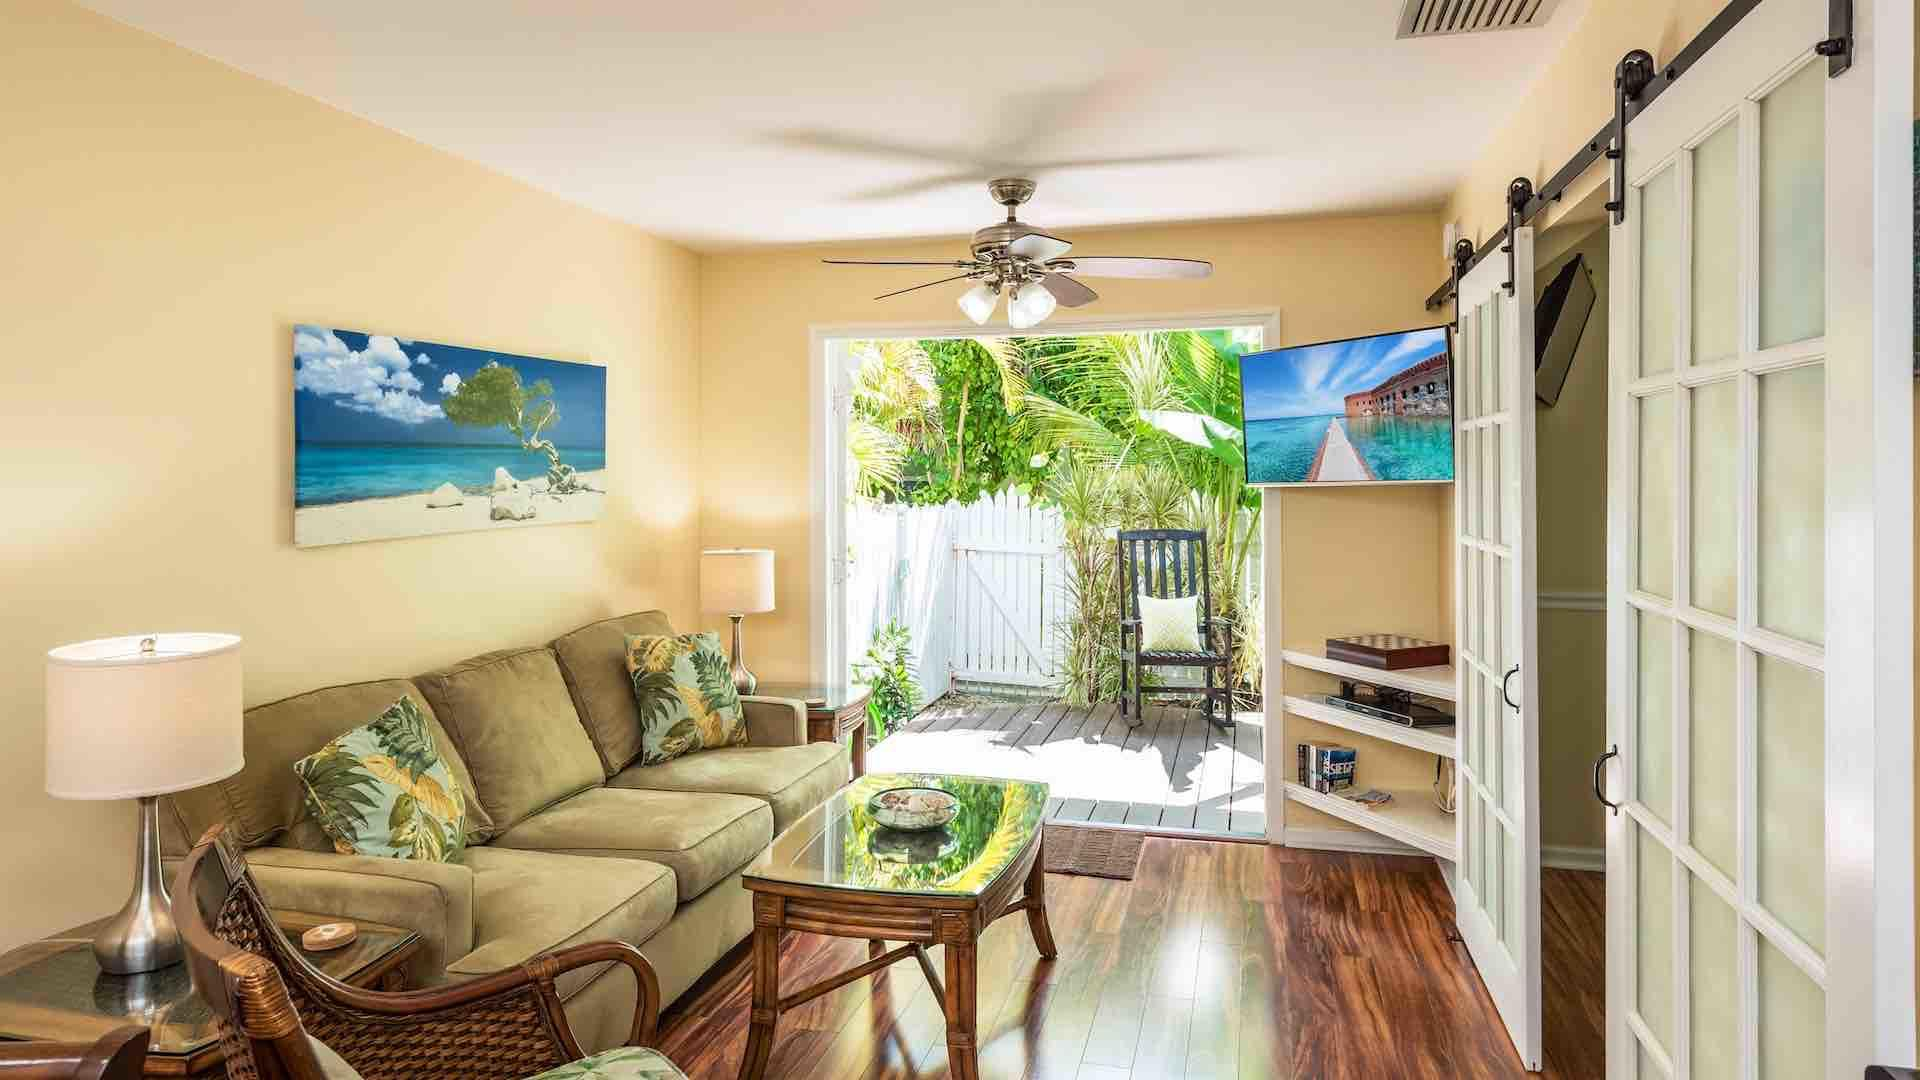 Saltwater Harmony has large French doors in the living room that open to the back patio...